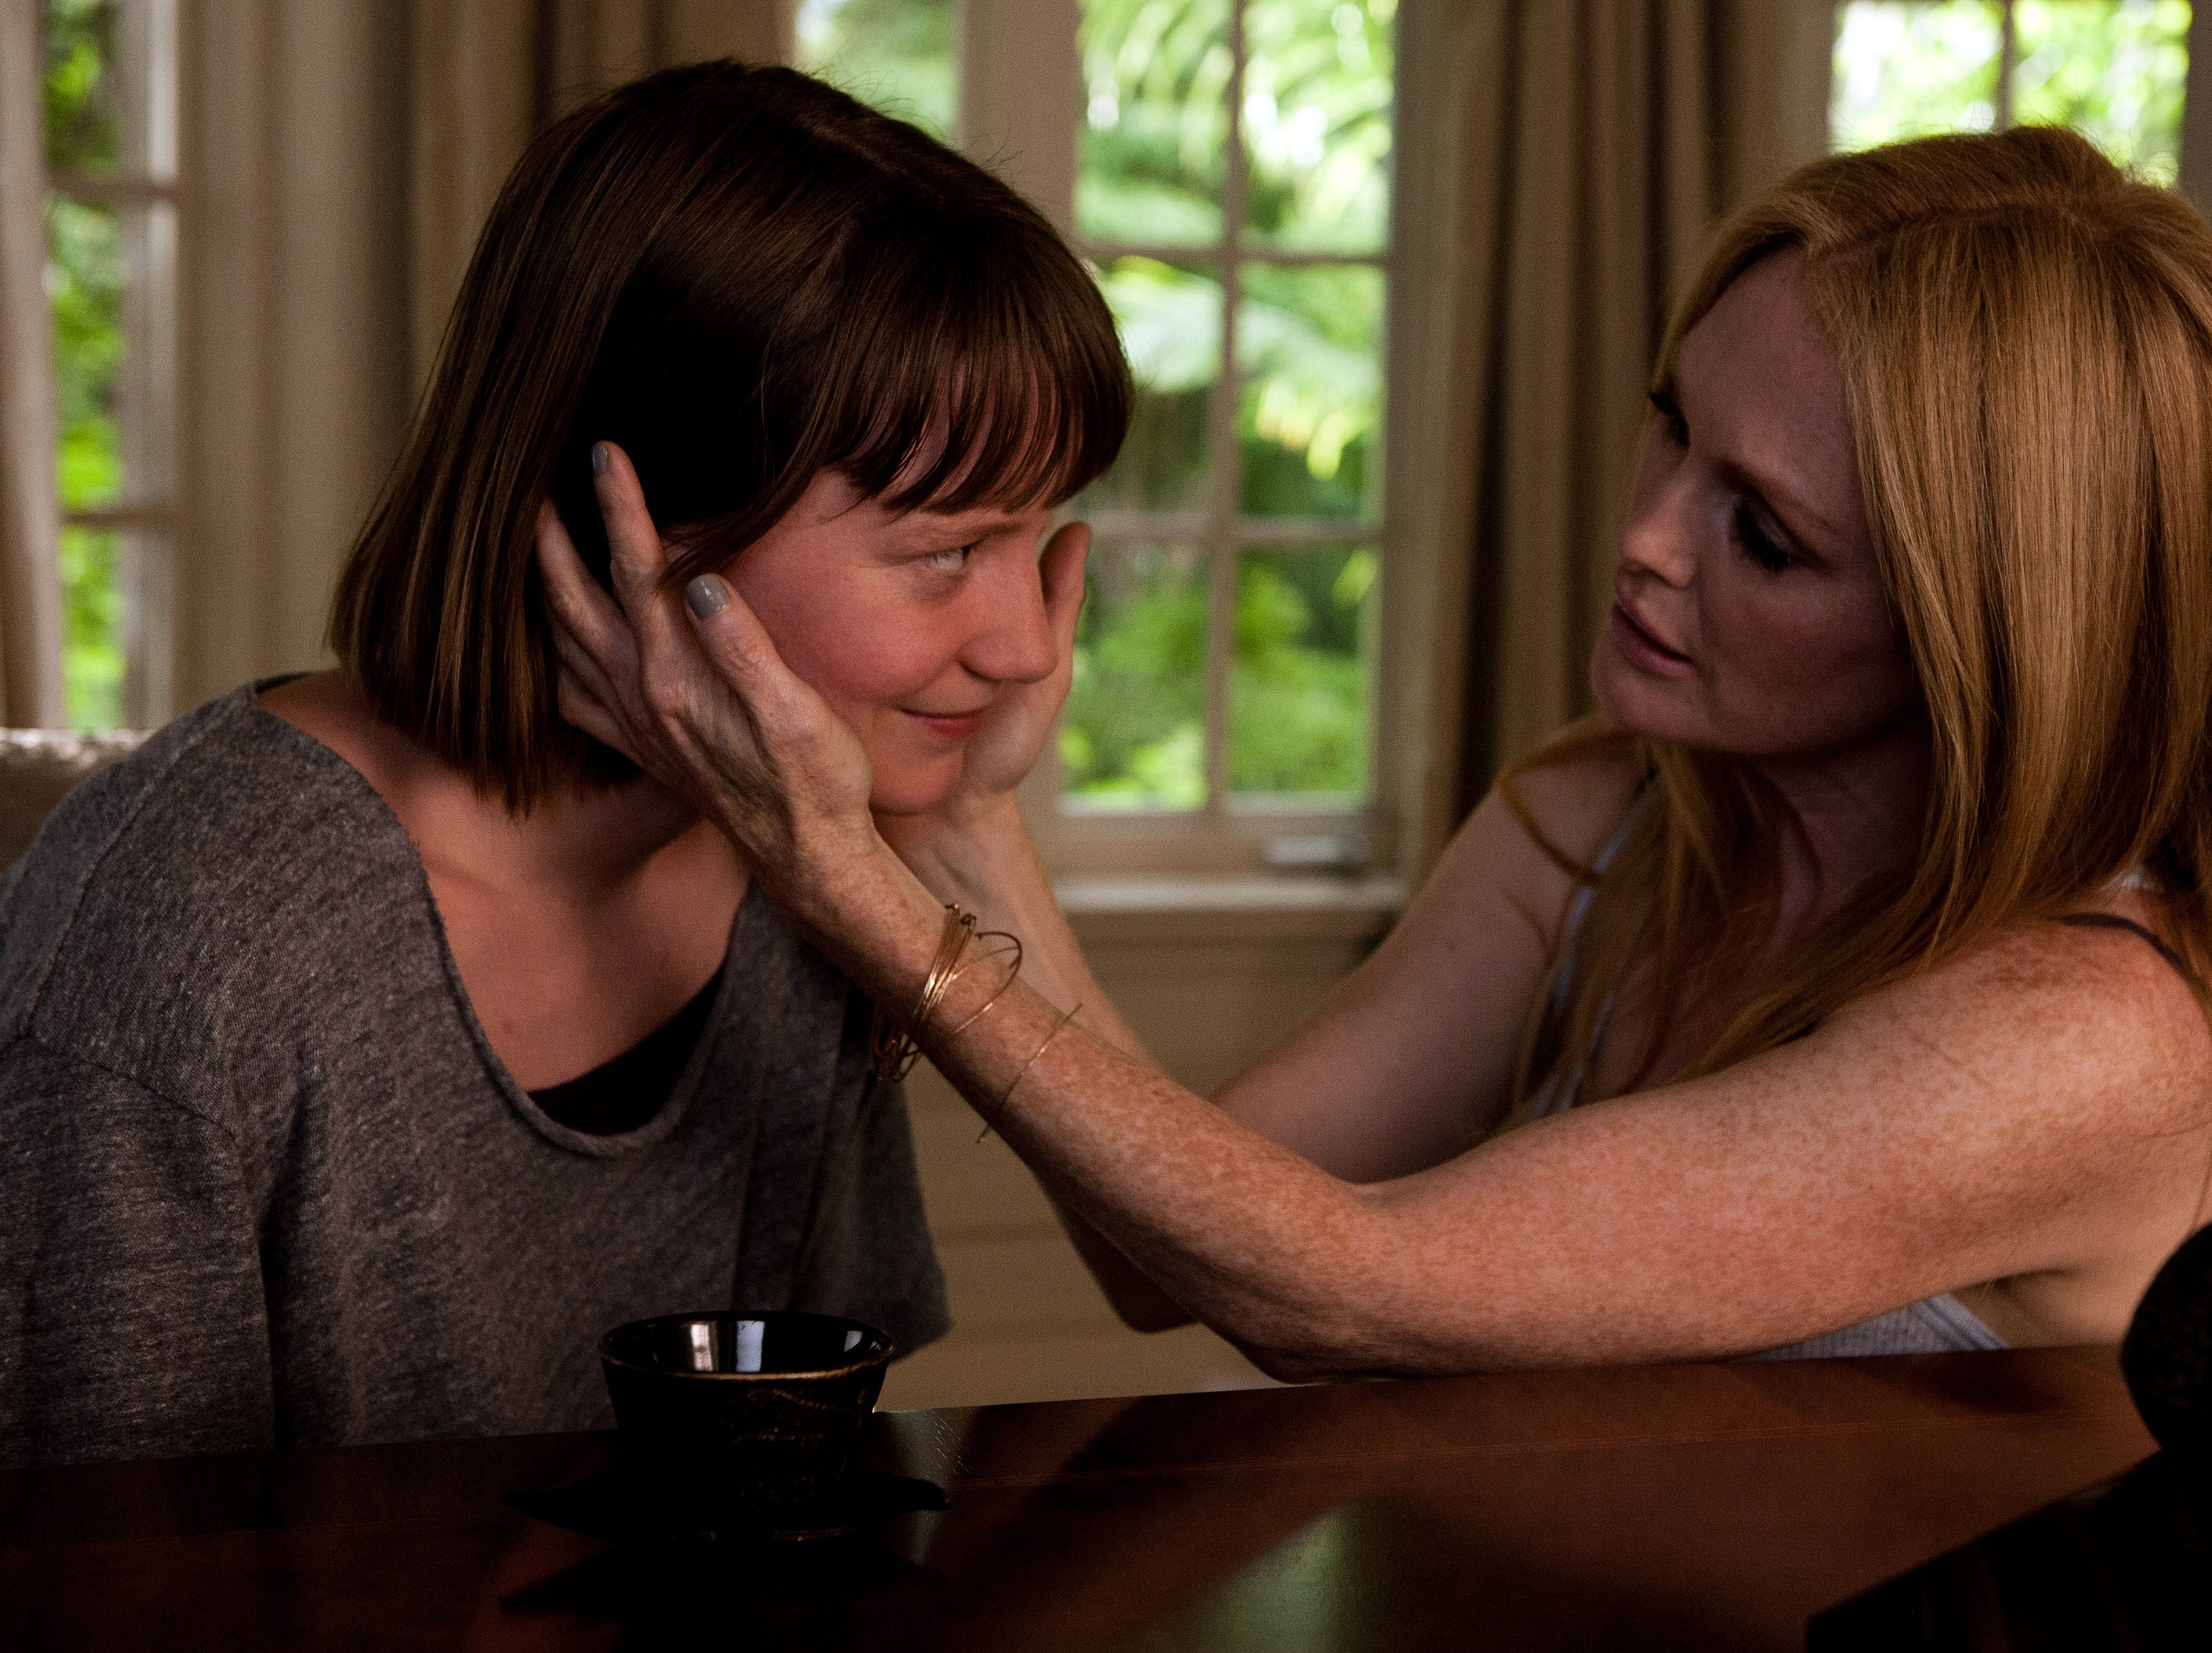 """Mia Wasikowska and Julianne Moore in a scene from the motion  picture """"Maps to the Stars."""""""